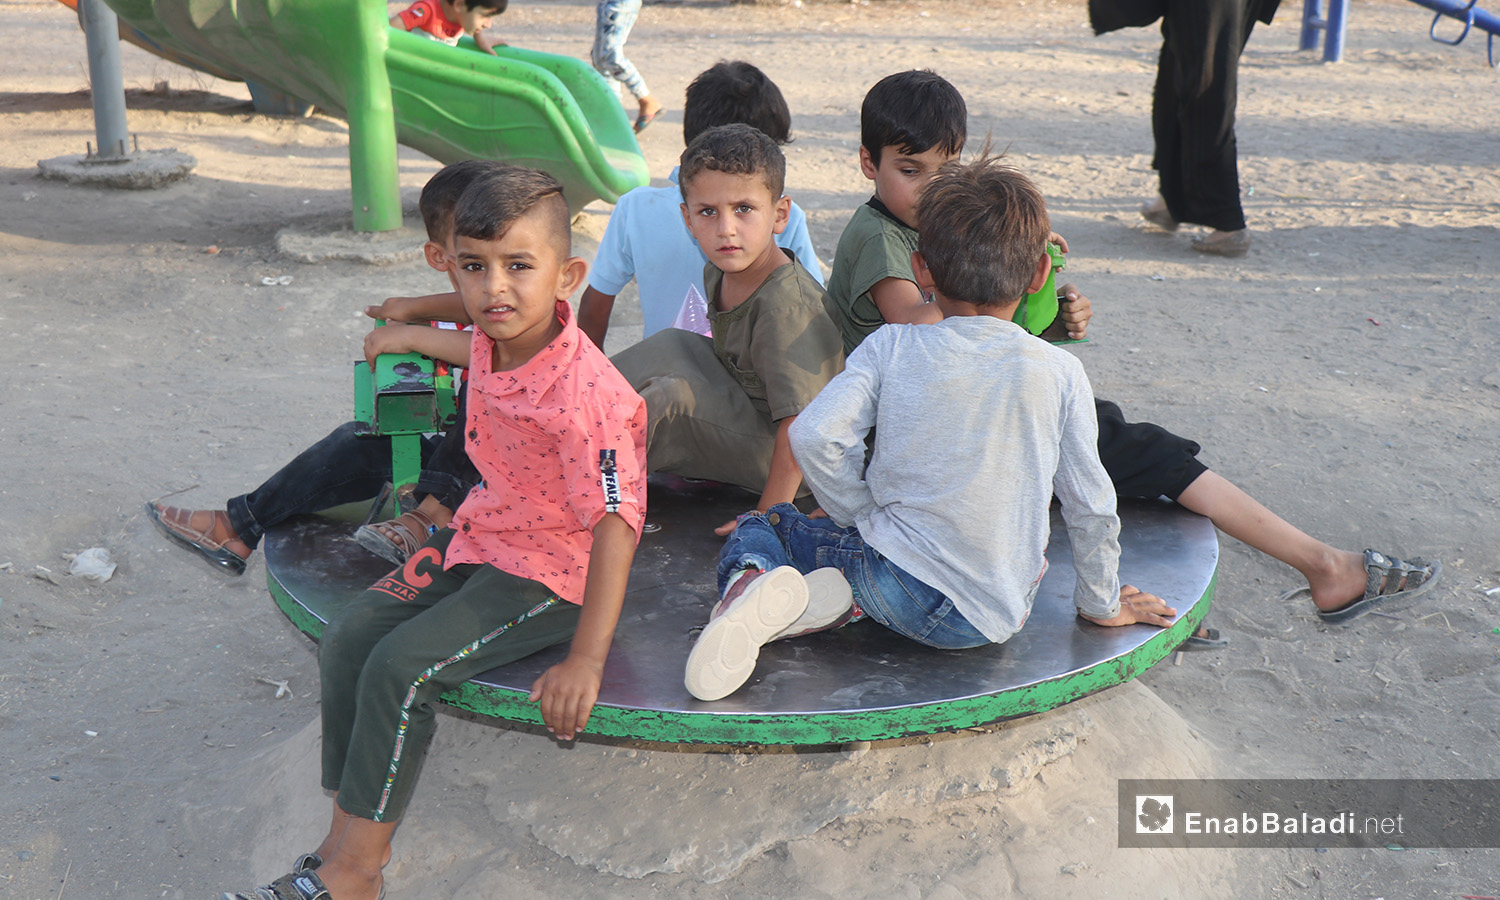 A group of children playing in one of the parks in al-Raqqa city  - 26 July 2020 (Enab Baladi / Abdul Aziz Saleh)